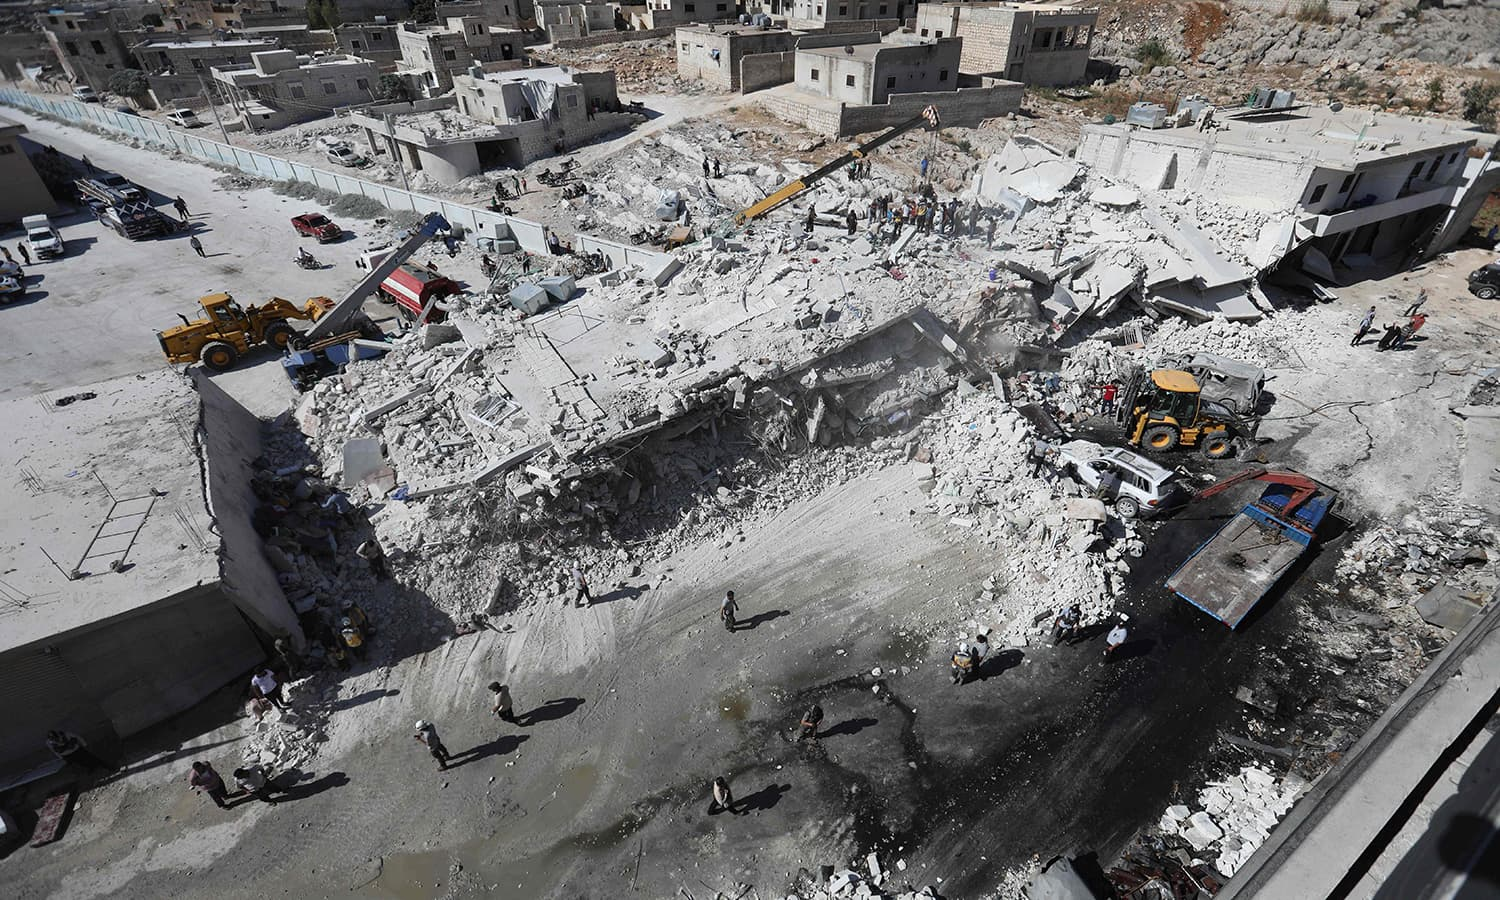 Destroyed buildings are seen on August 12, 2018 following an explosion at an arms depot in a residential area in Syria's northern Idlib province city of Sarmada. —AFP